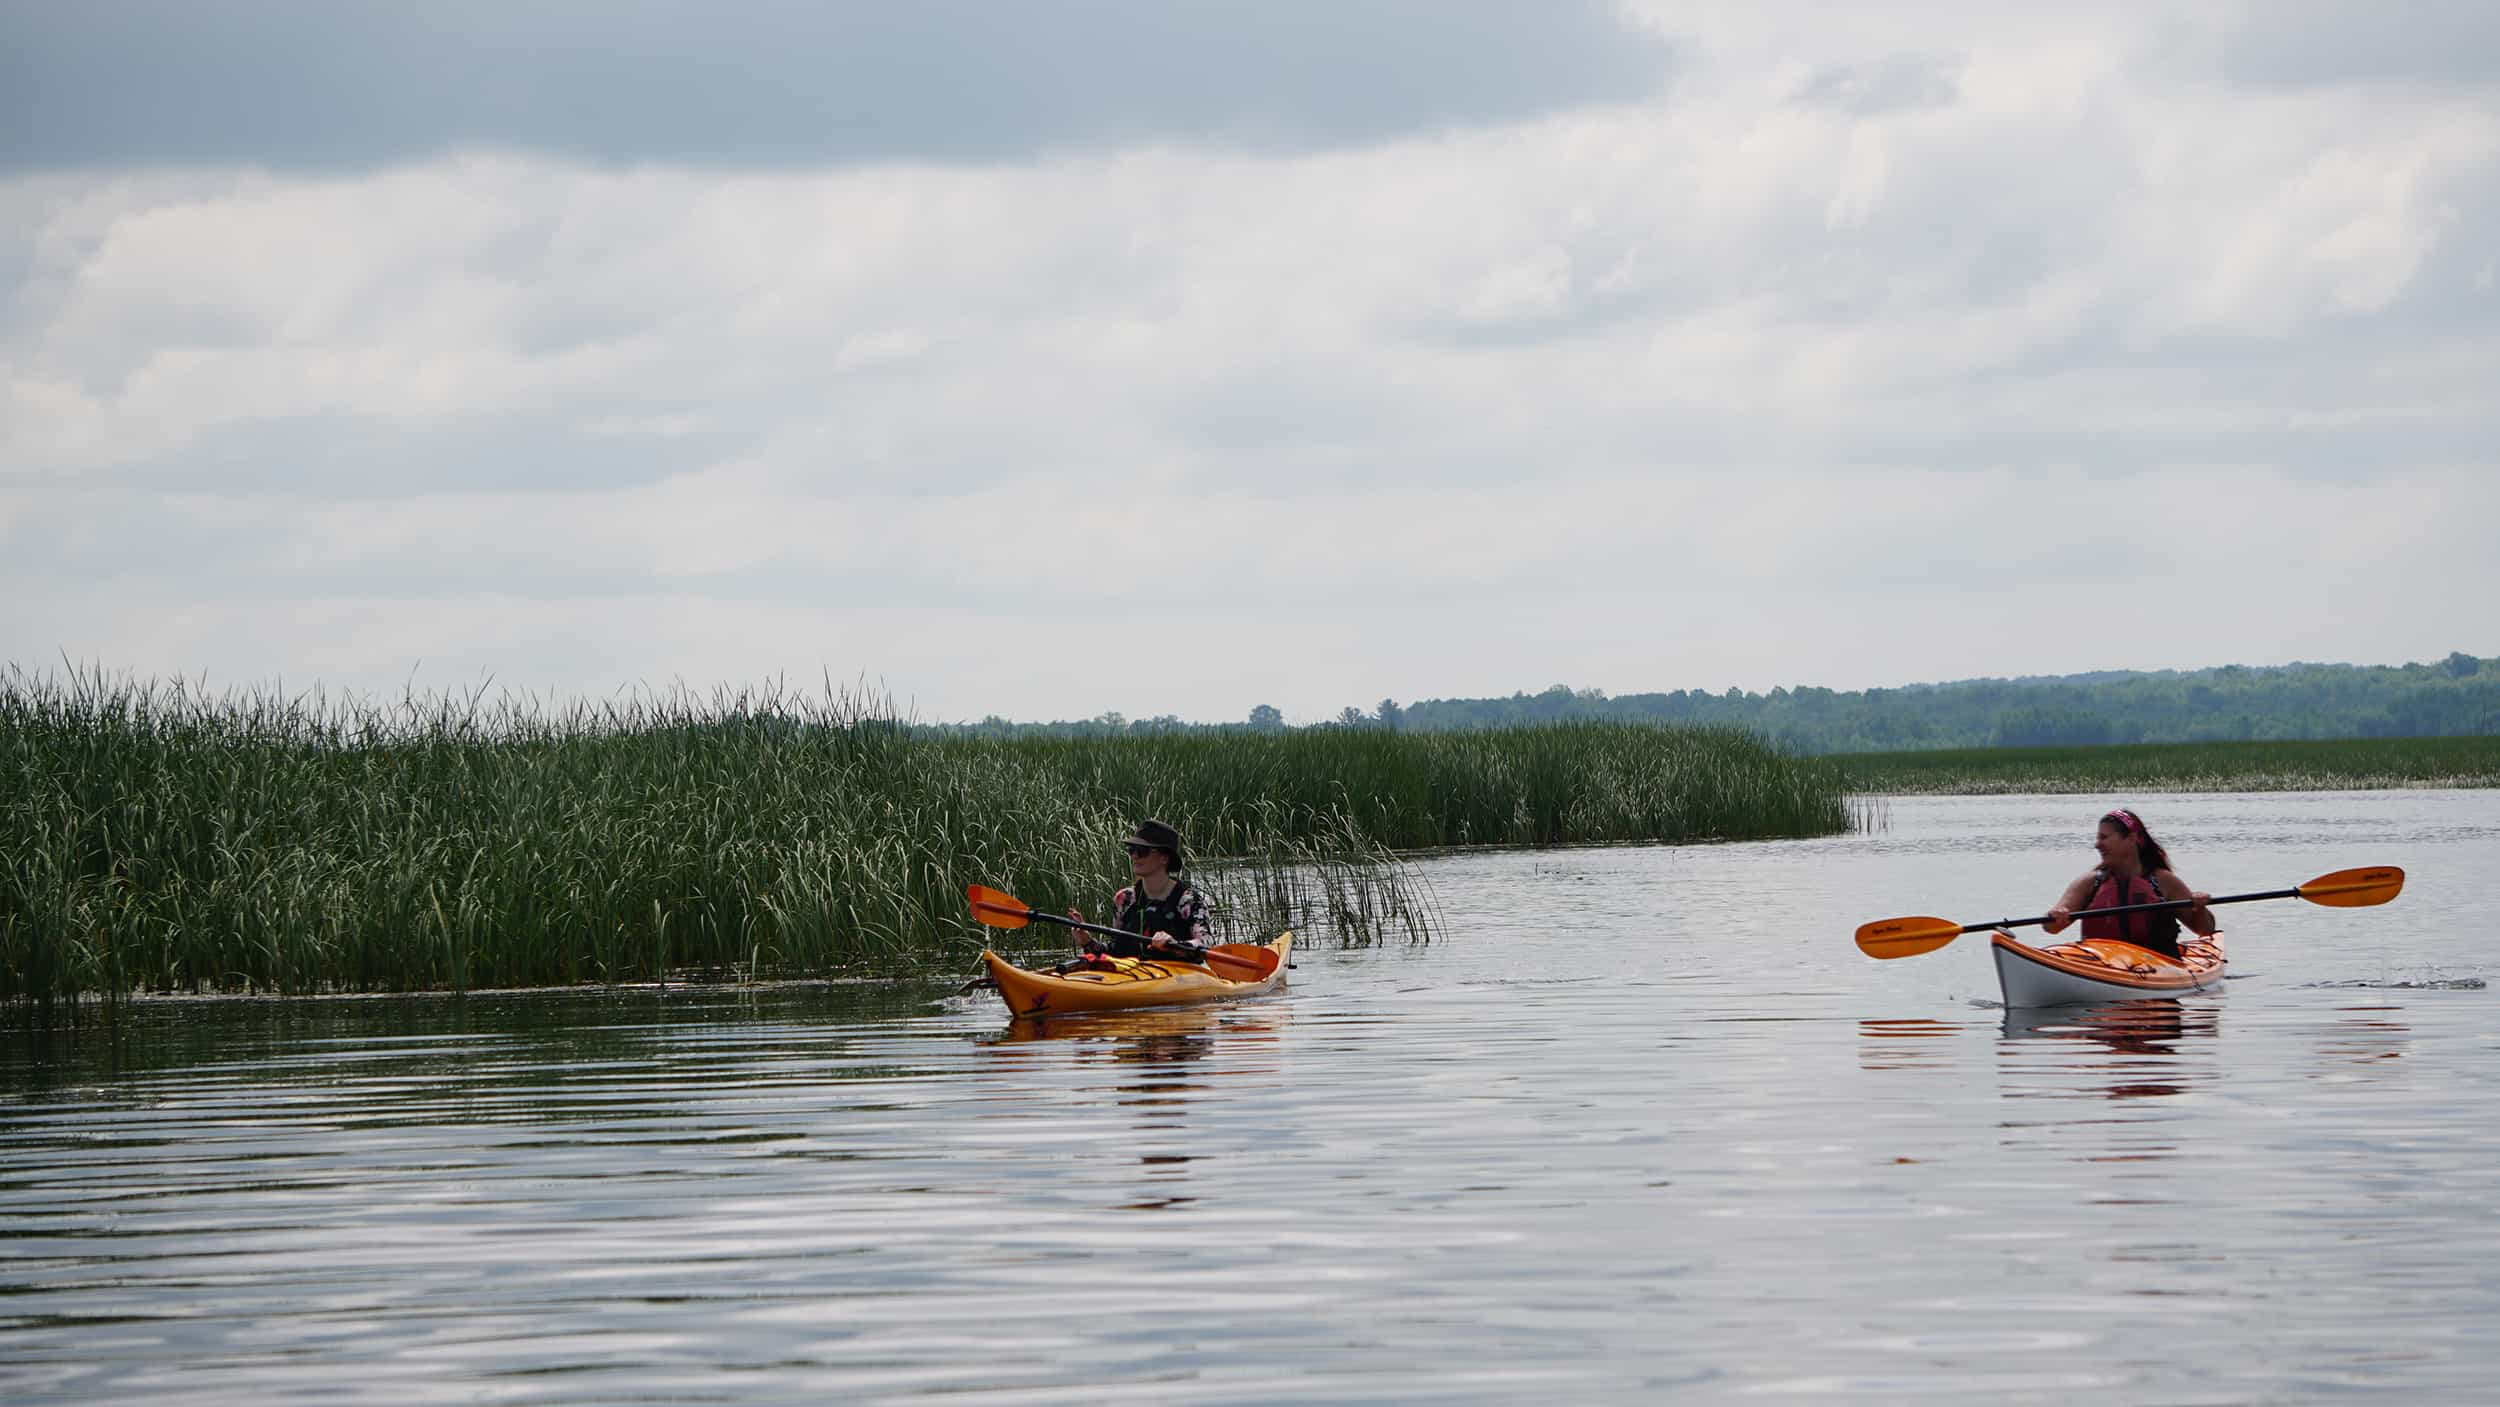 The Happy Camper: The Journey of Paddling Ontario's Lake Country